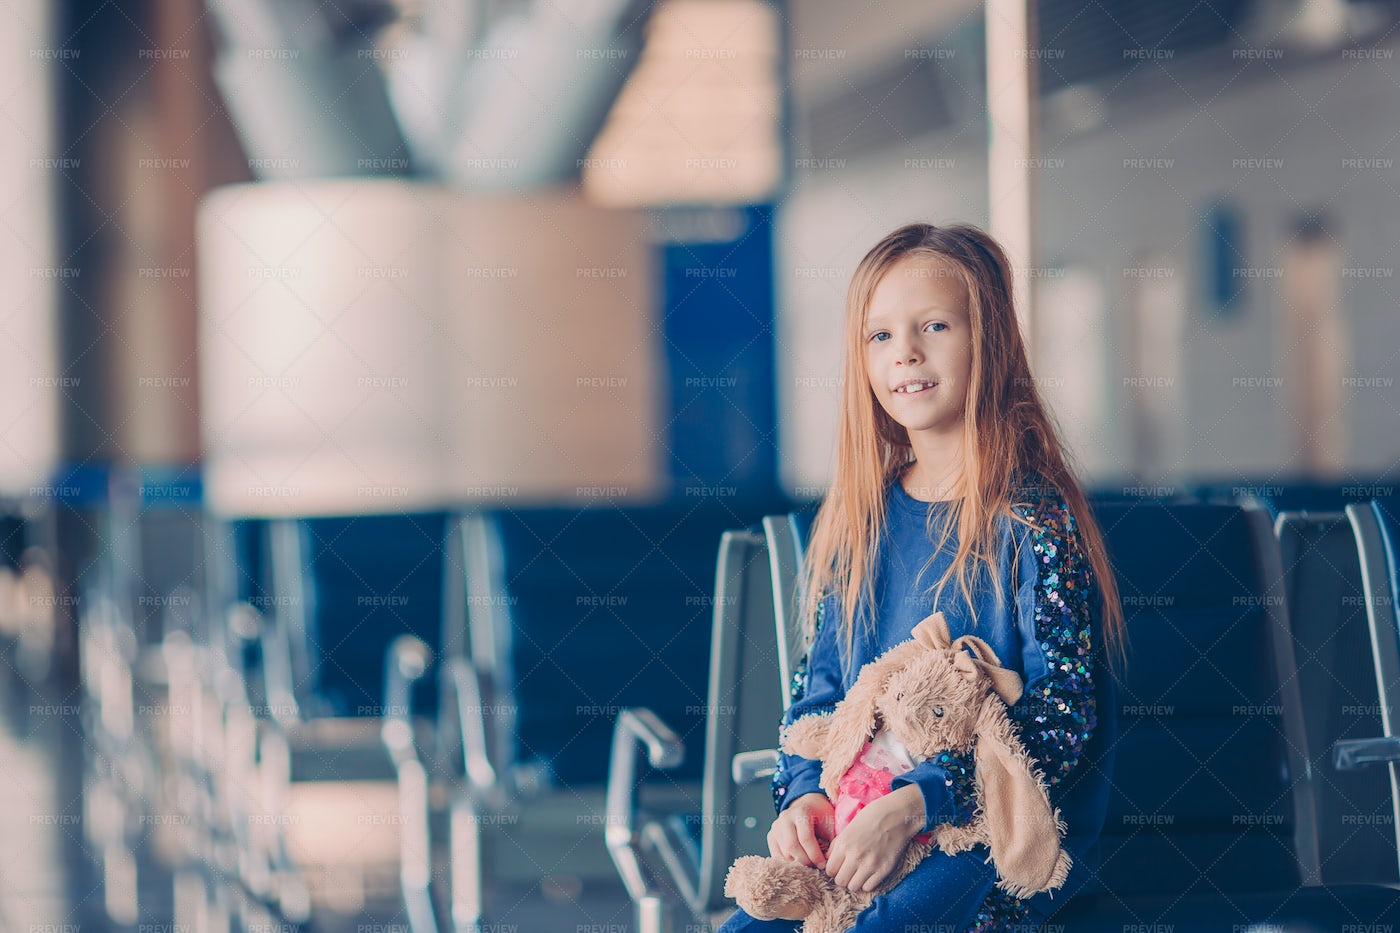 Girl Sitting  In Airport: Stock Photos